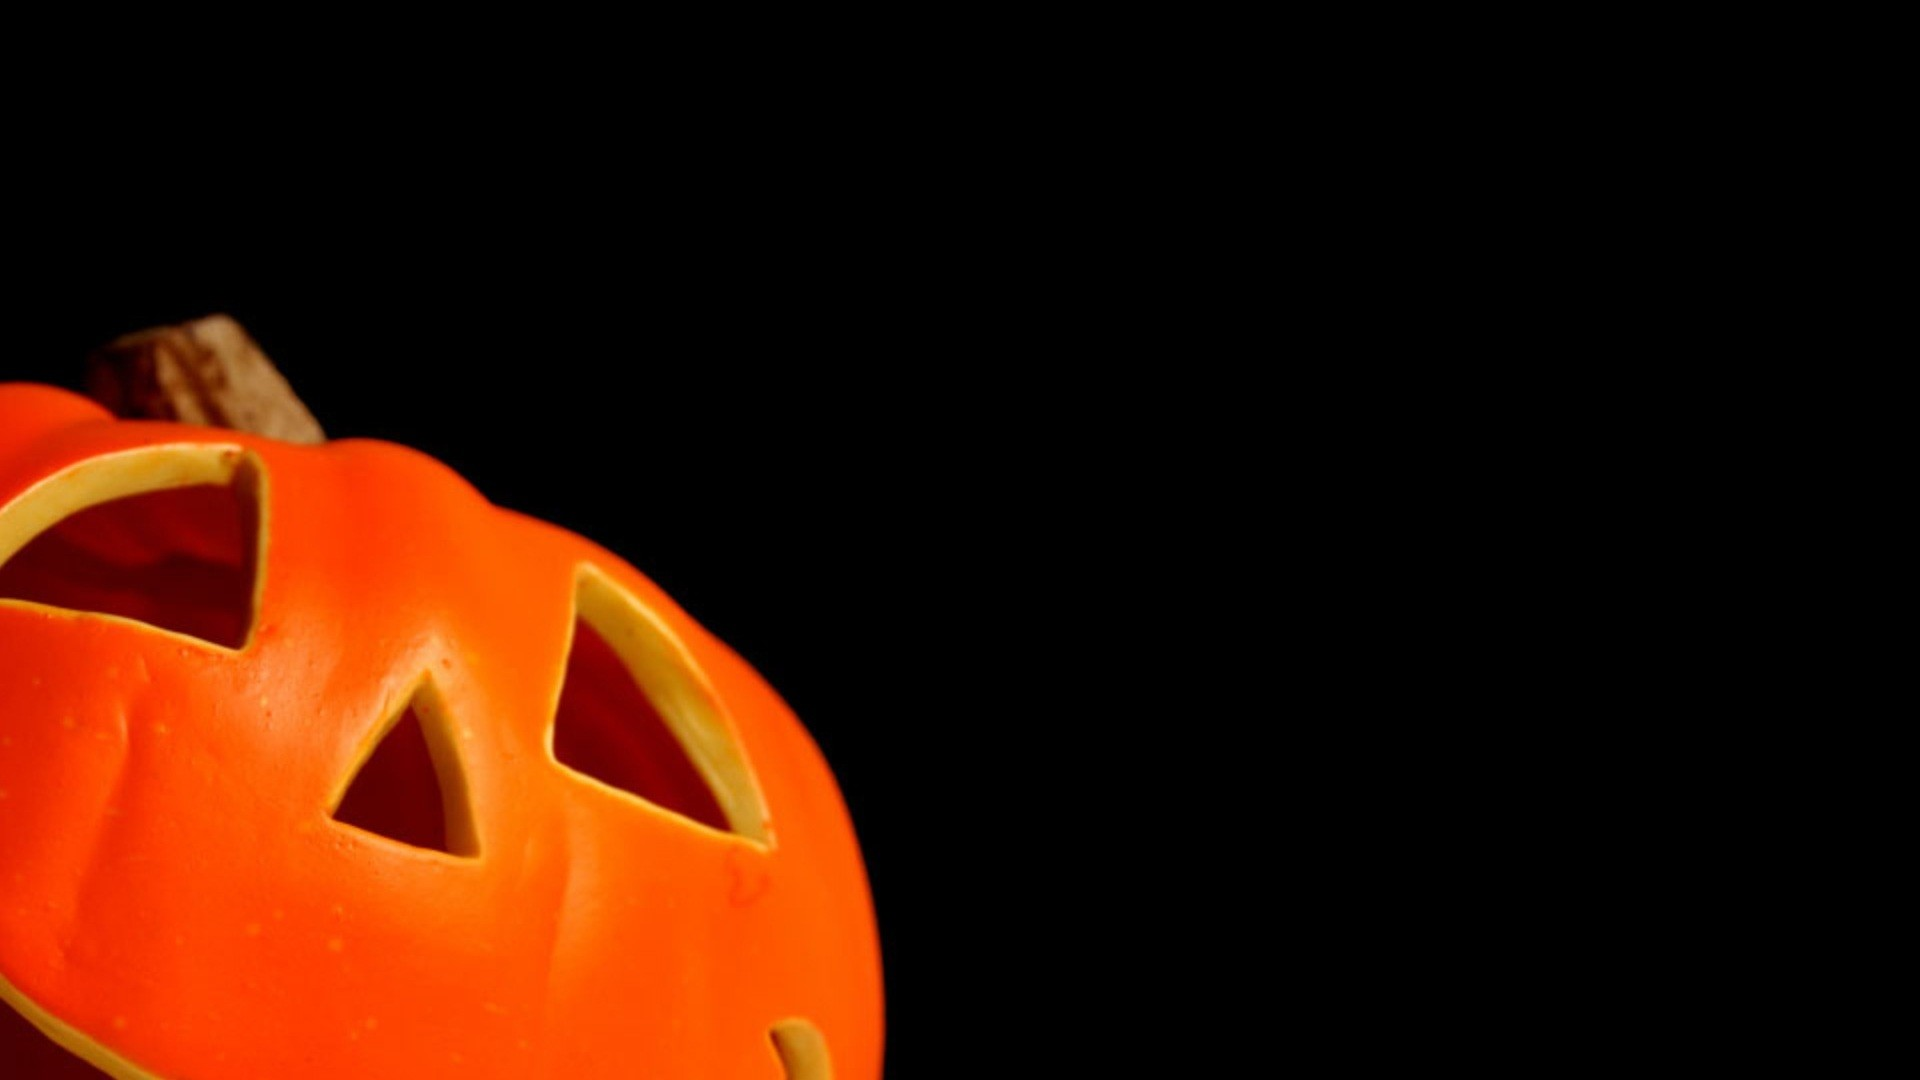 Res: 1920x1080, Halloween Wallpapers 98, Free Wallpapers, Free Desktop Wallpapers, HD  Wallpapers